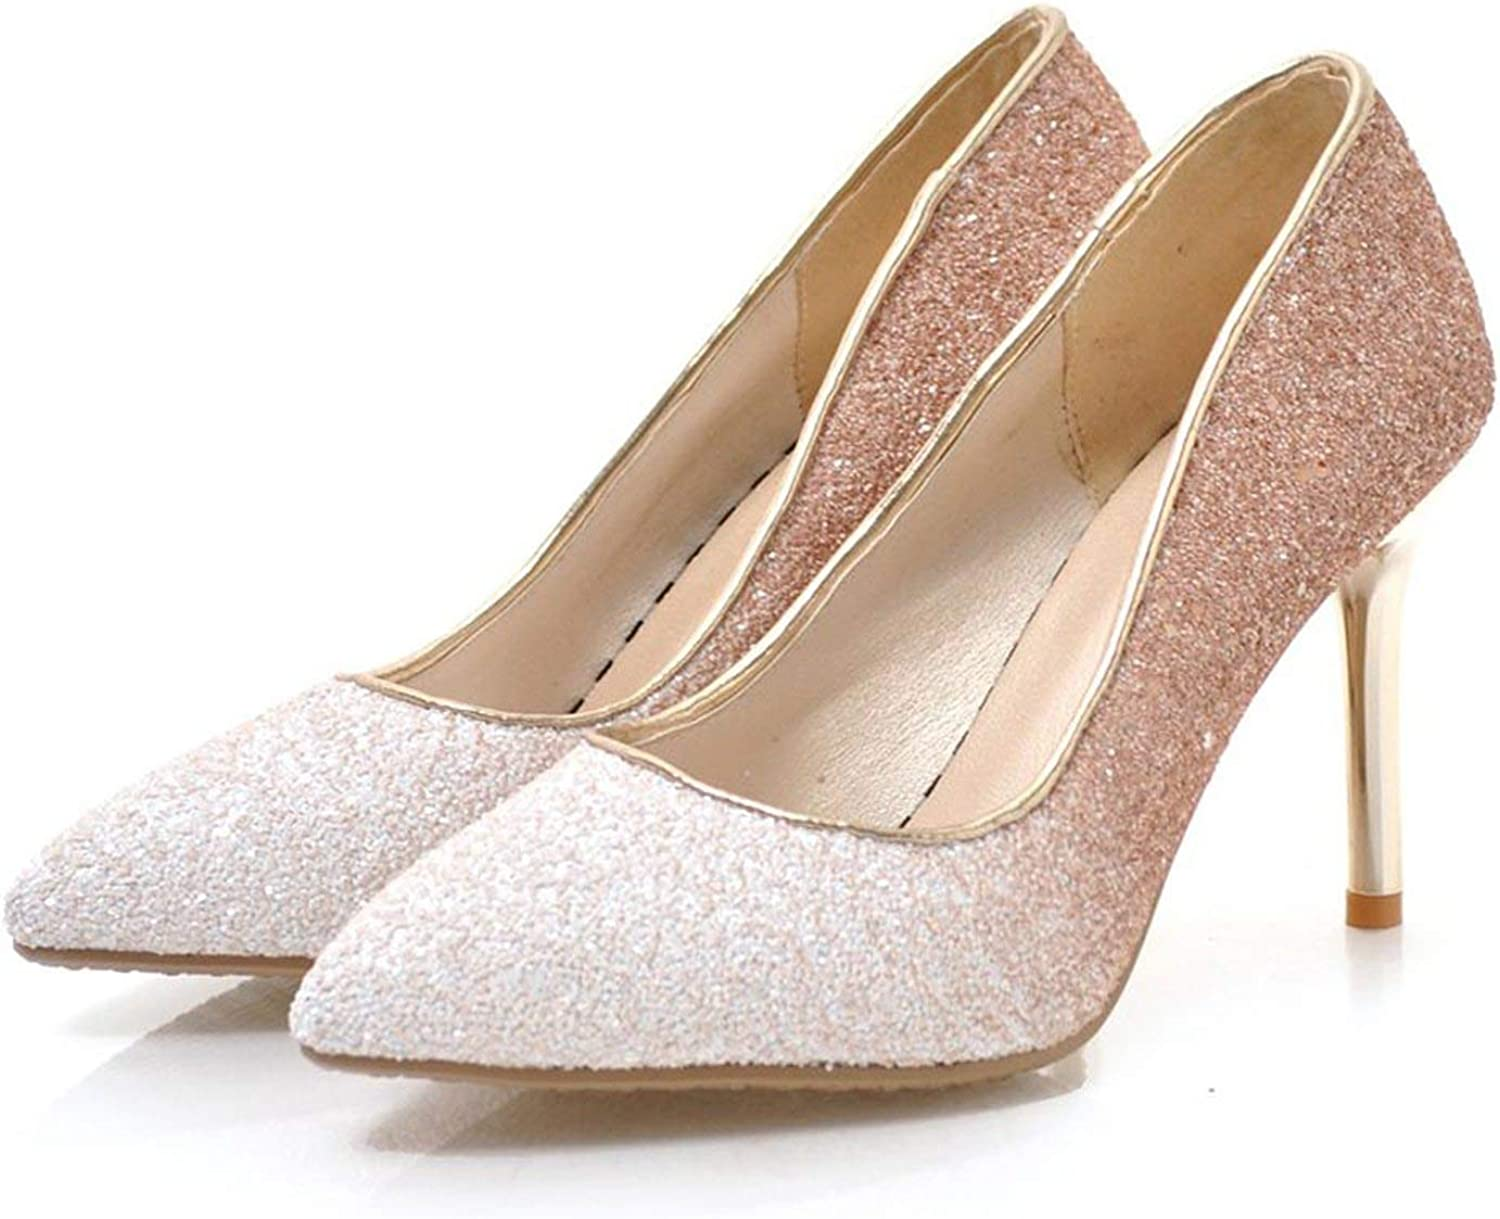 FINDYOU Fashion Sequins Cloth Thin Heel Mix colors Women Pumps shoes Shallow Pointed Toe Dance Dress Party shoes